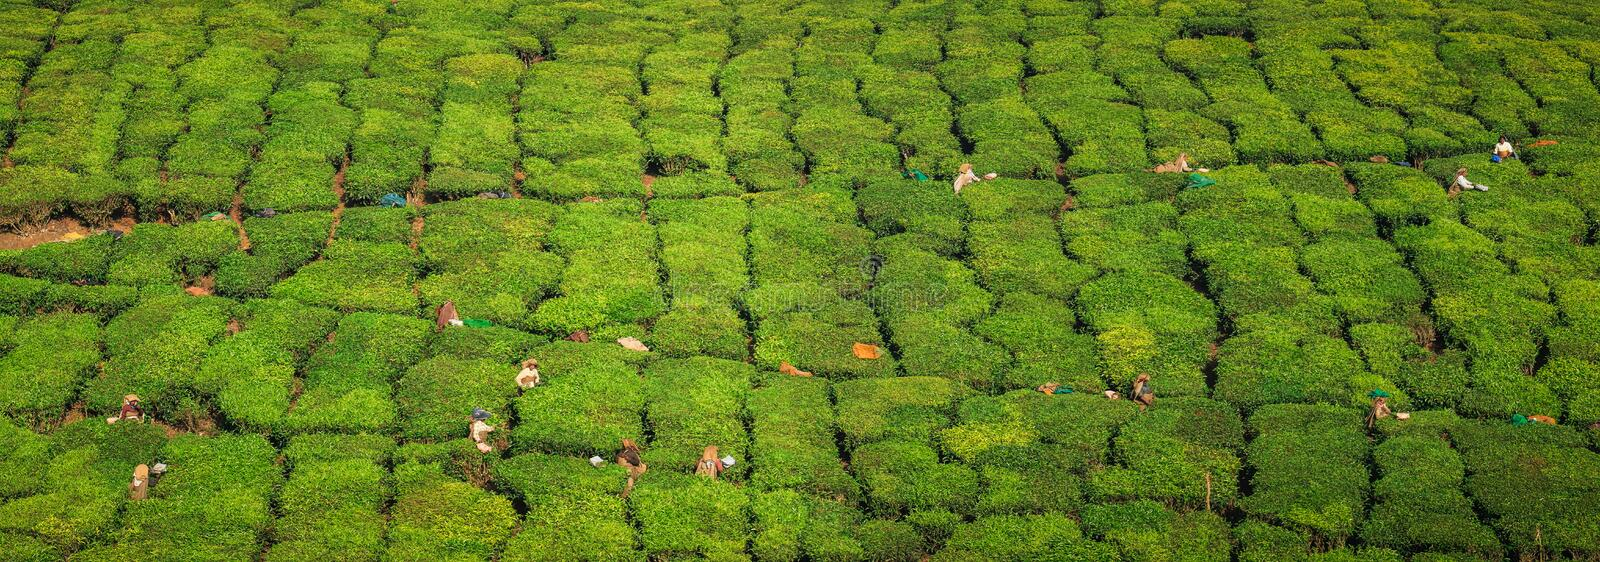 Panoramic view of tea workers hasrvesting tea, on the green hills and mountains around Munnar, Kerala, India. Munnar is a town and hill station located in the royalty free stock images